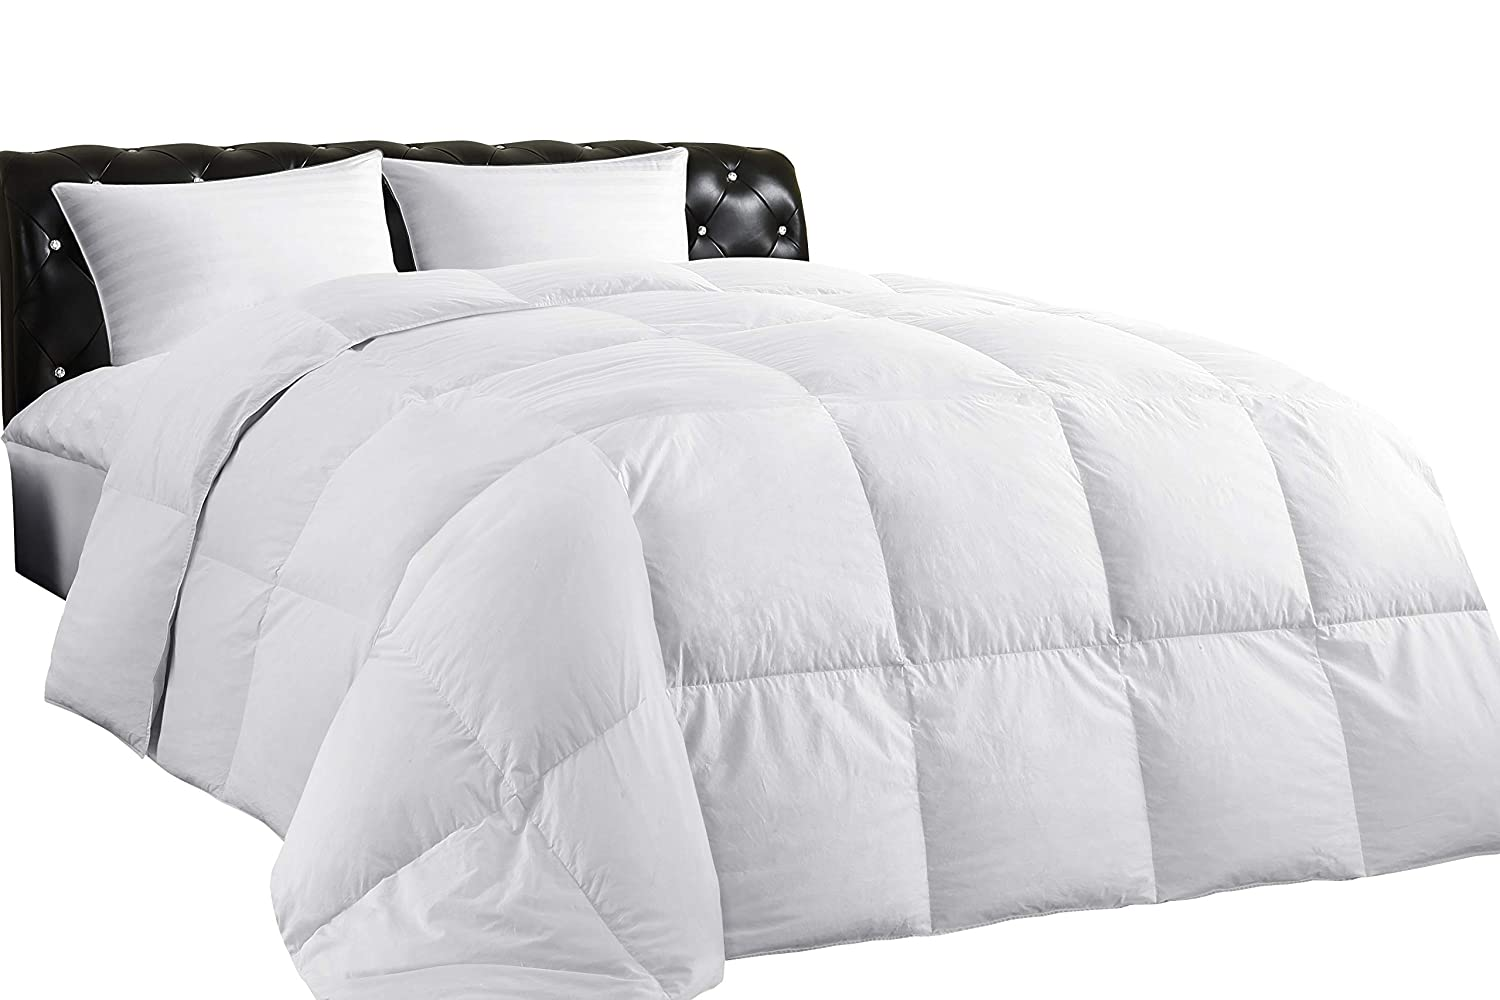 Lightweight Down Comforter (Twin), All-Season Medium Warmth, 100% Cotton Cover